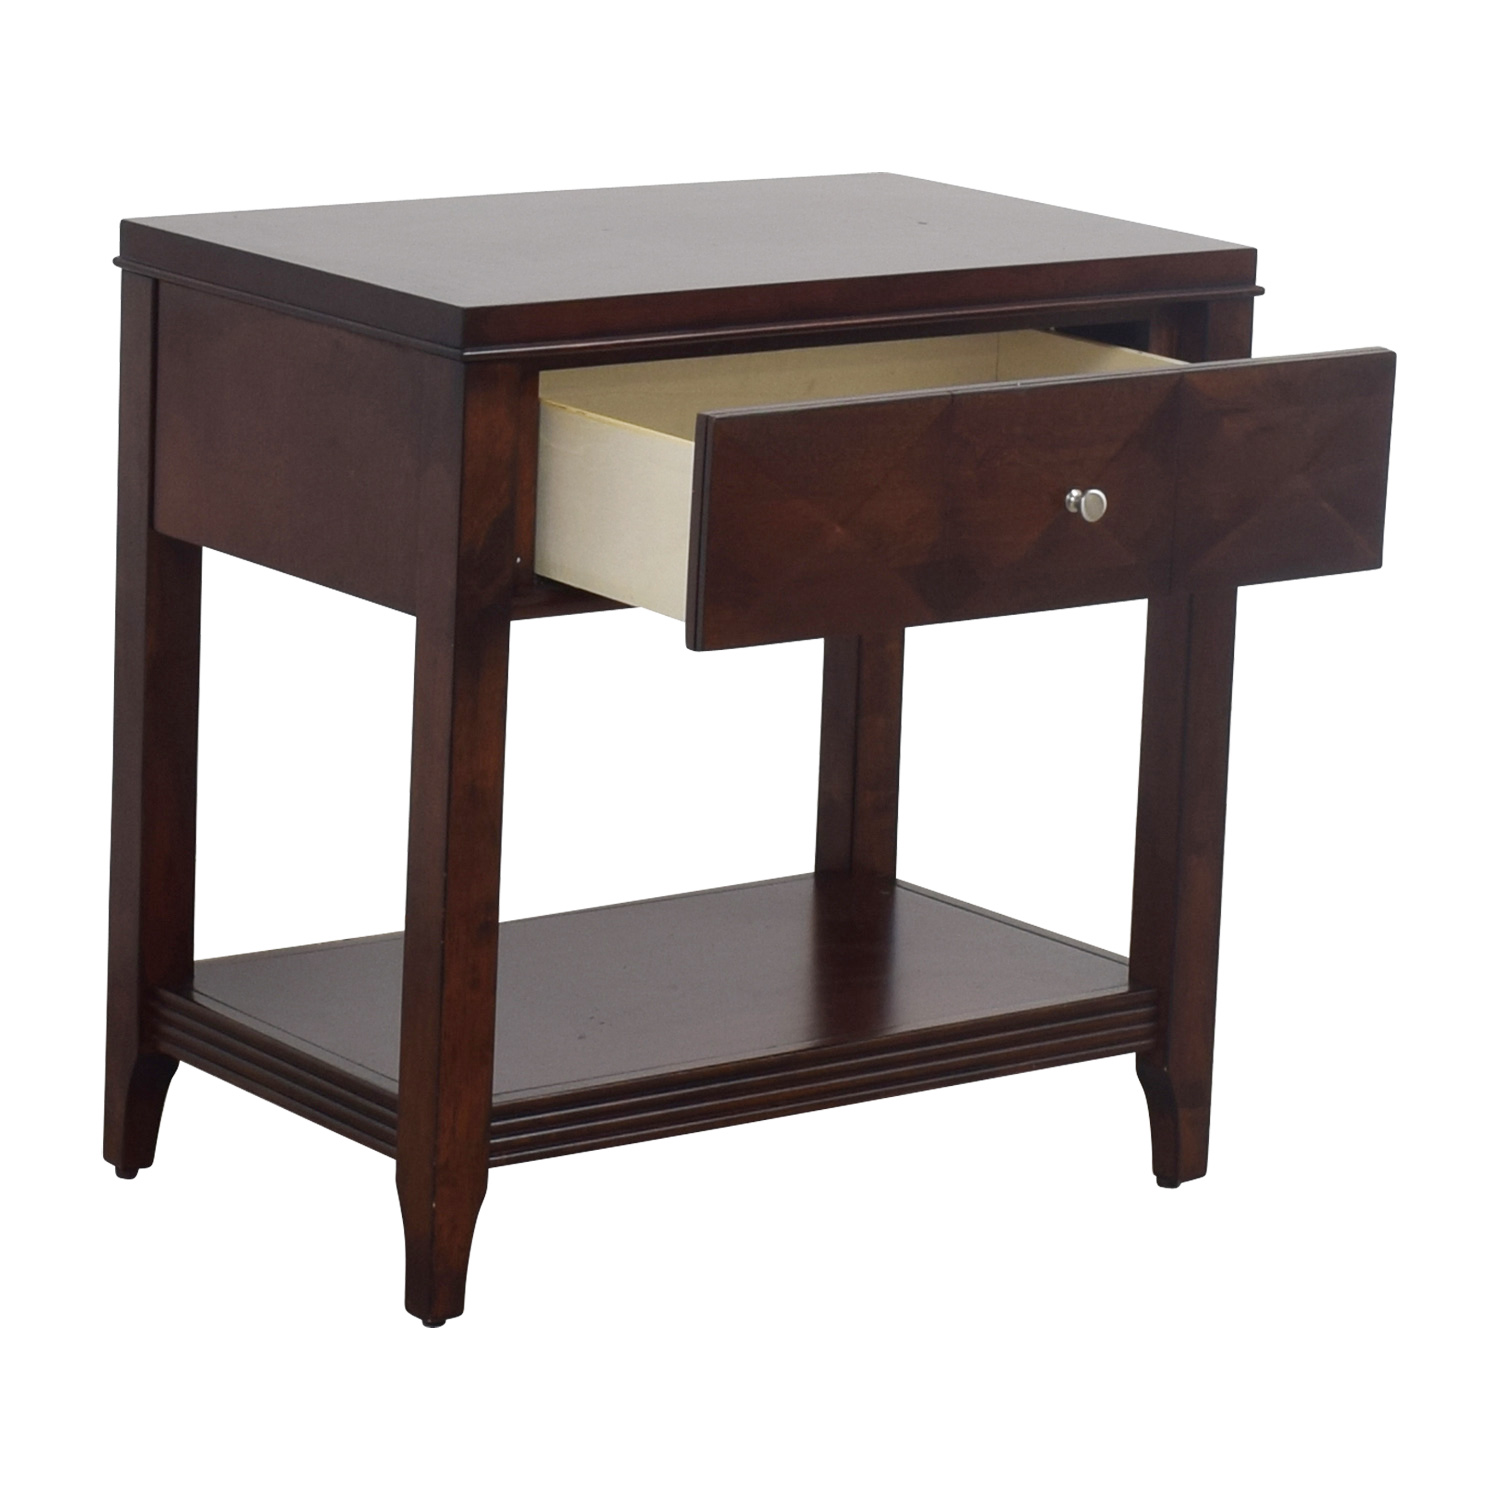 Raymour & Flanigan Raymour & Flanigan Shadow Expresso Single Drawer Nightstand discount